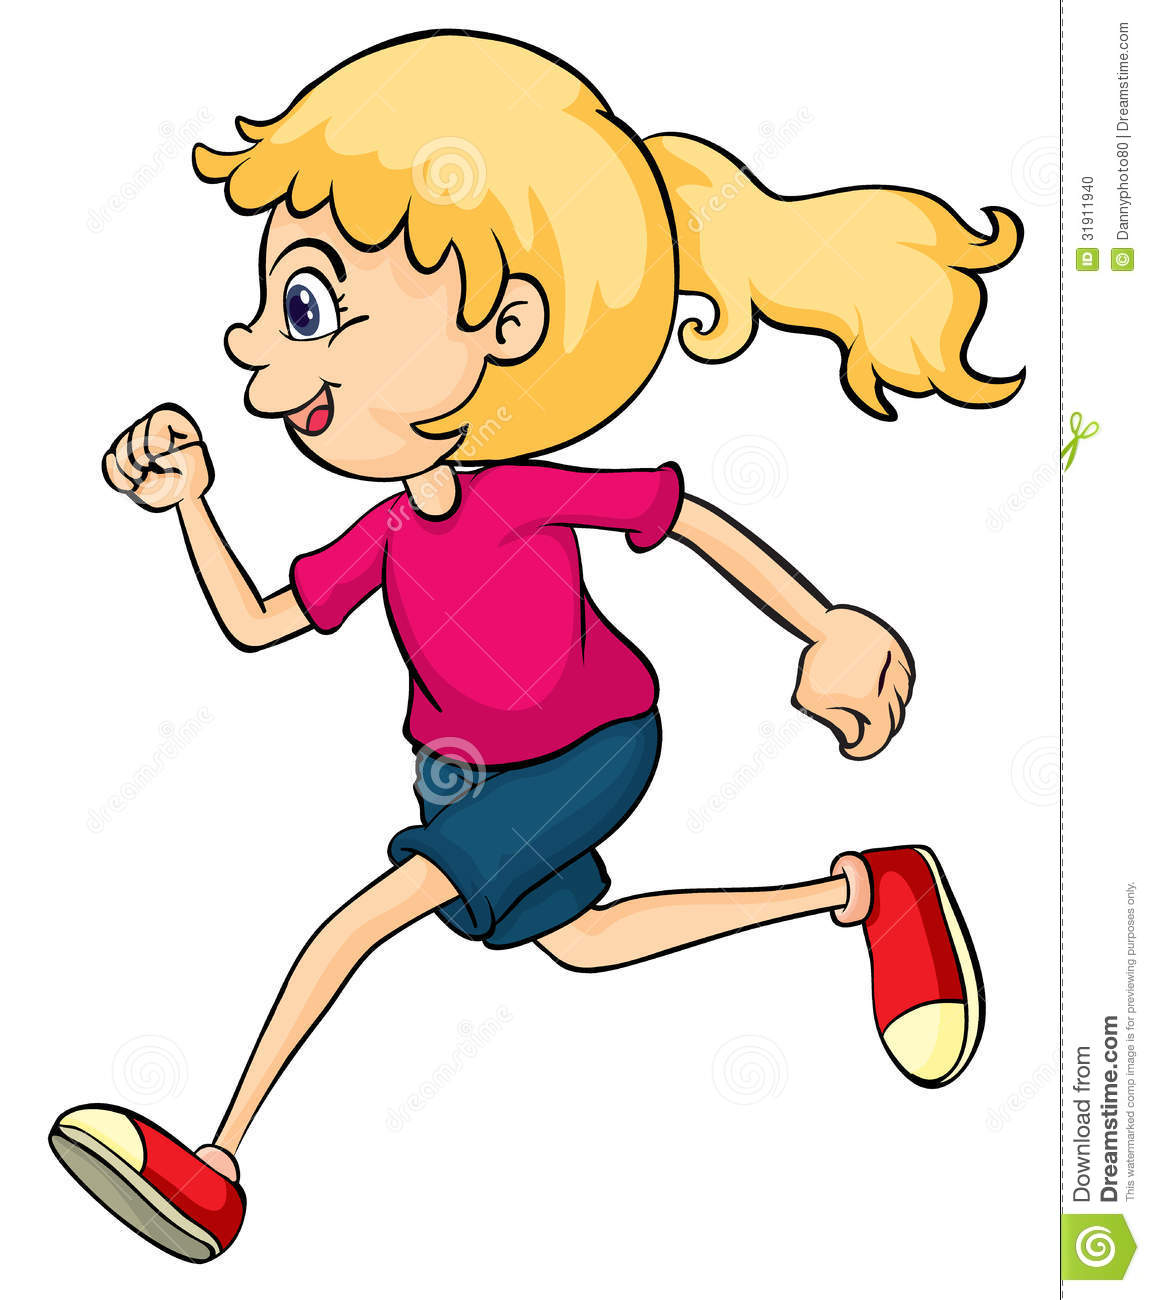 A running girl stock vector. Illustration of people ...